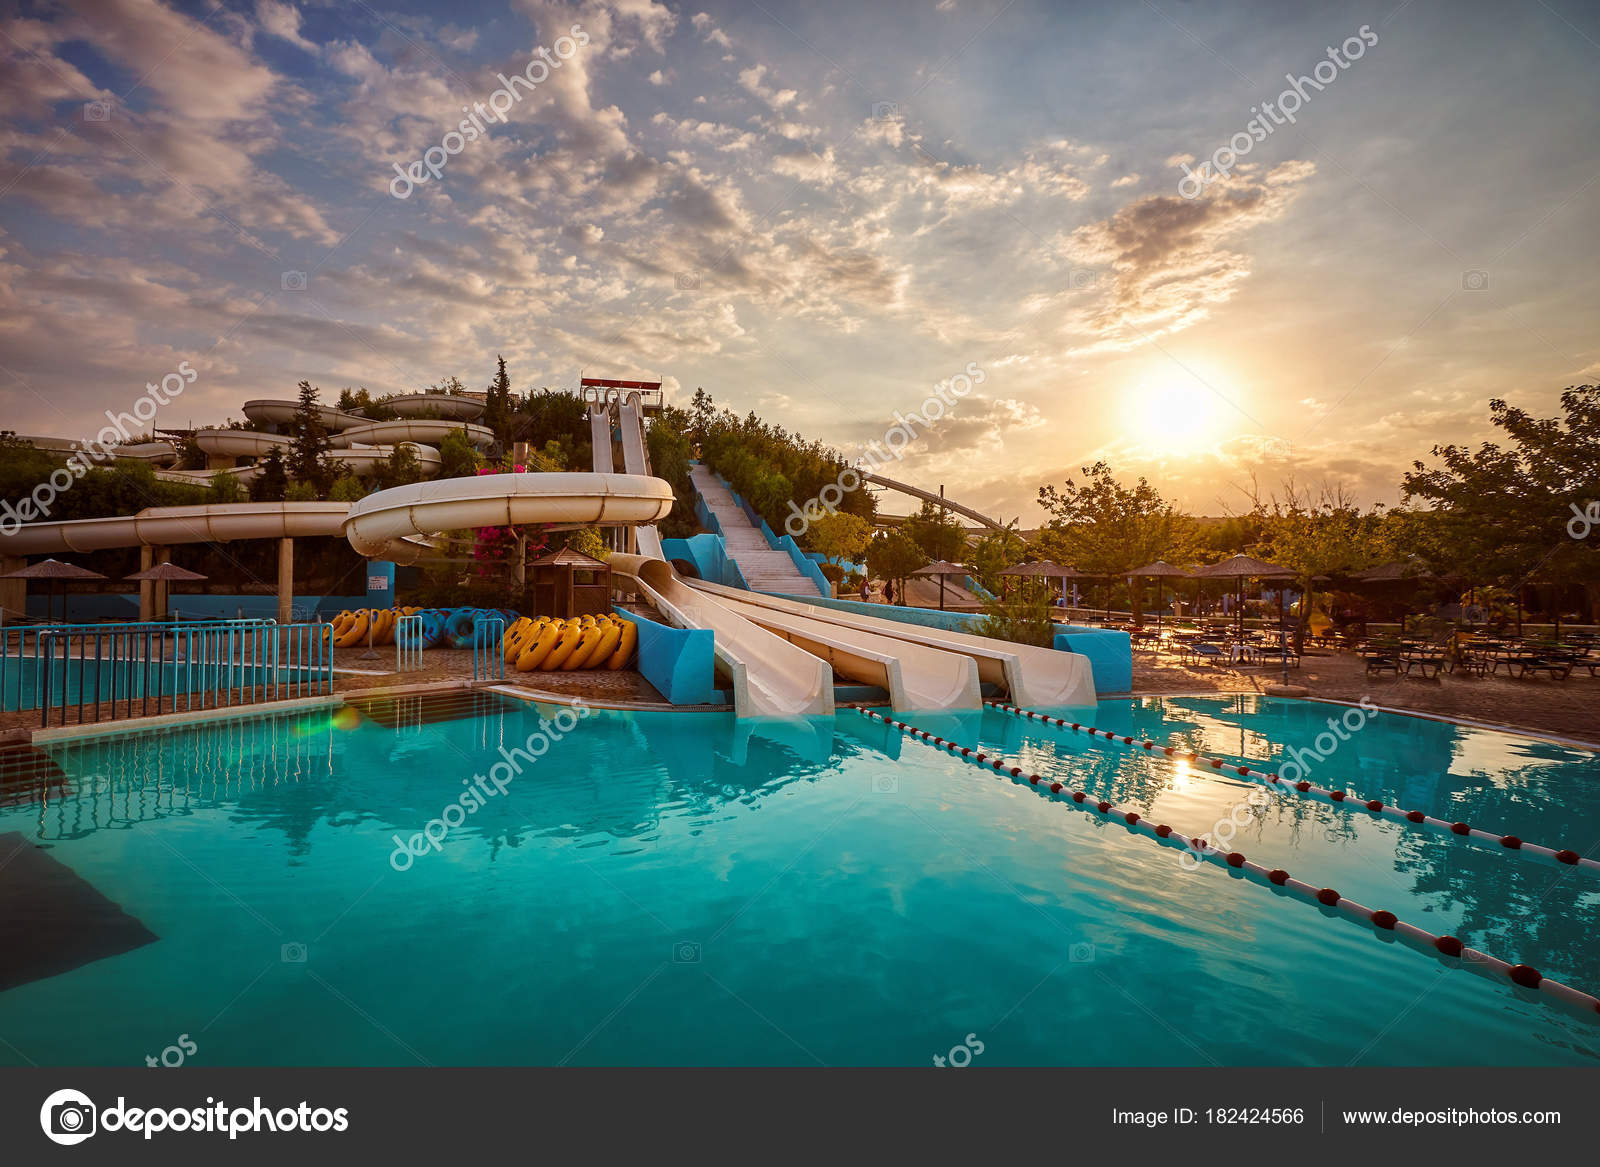 Water Slides Pool Aquapark Sunset Stock Photo C Vlade Mir